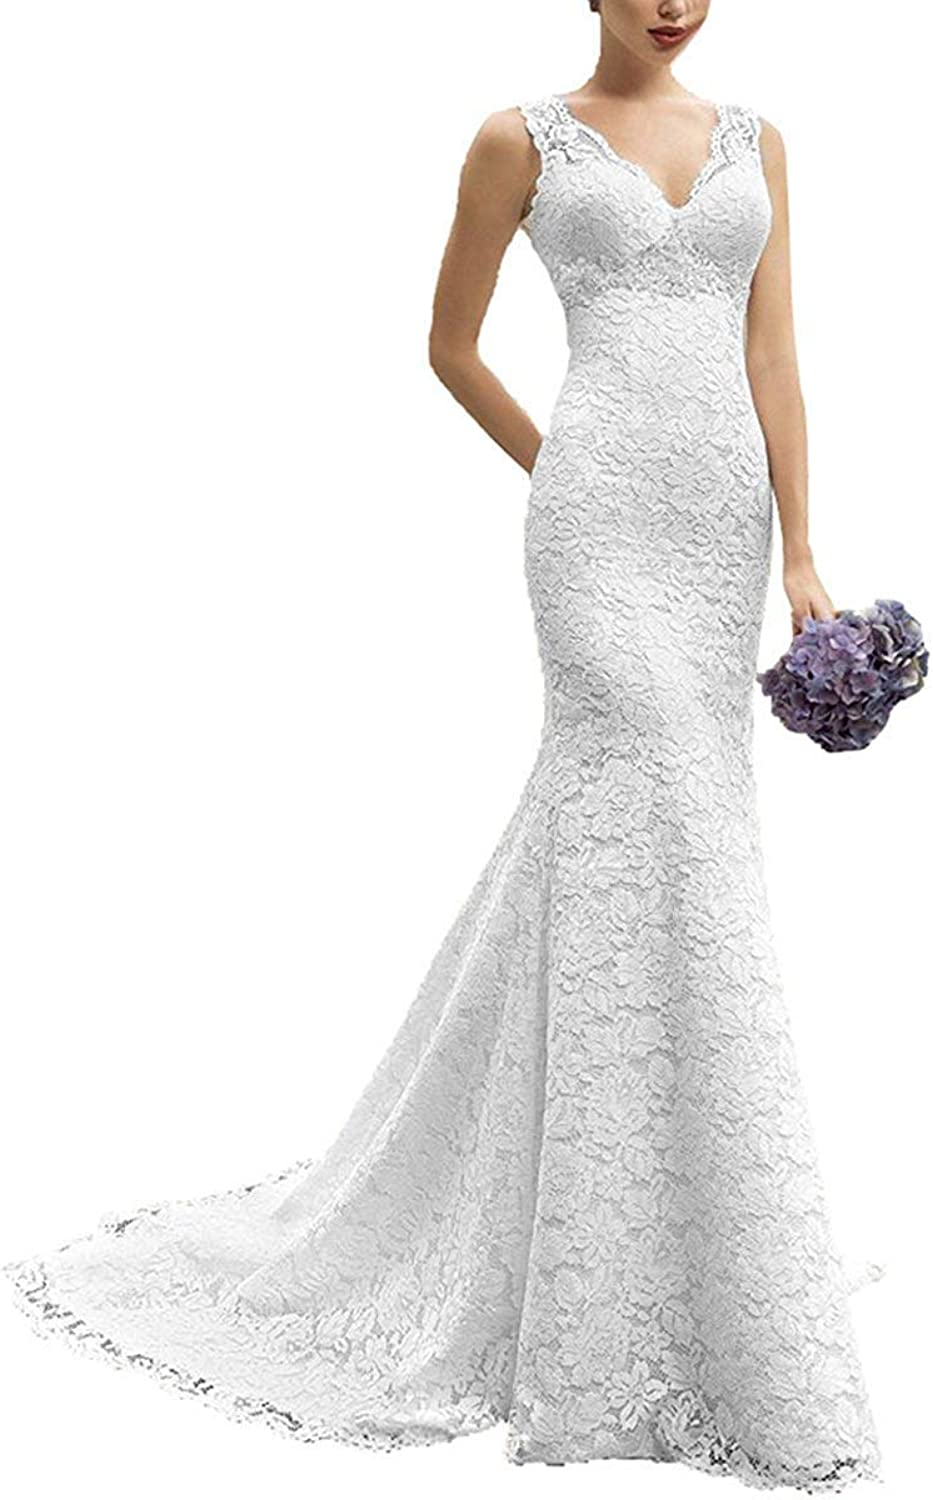 Fitty Lell Women's Mermaid Lace V Neck Wedding Dress Elegant Bridal Gowns